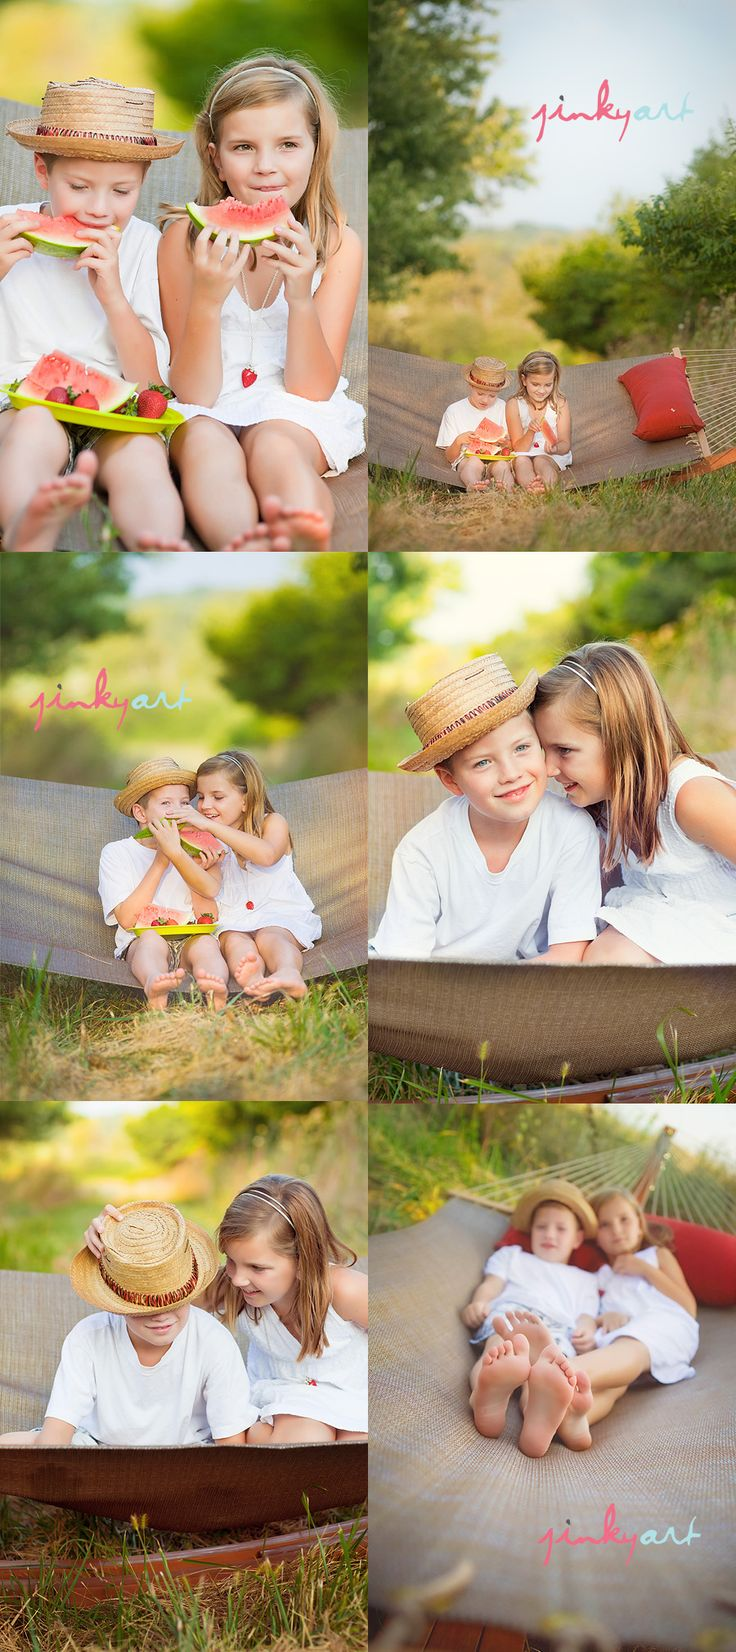 watermelon + hammock + straw hats = dreamy summer photoshoot // someday i'll have a couple kids to do this with!!  :)